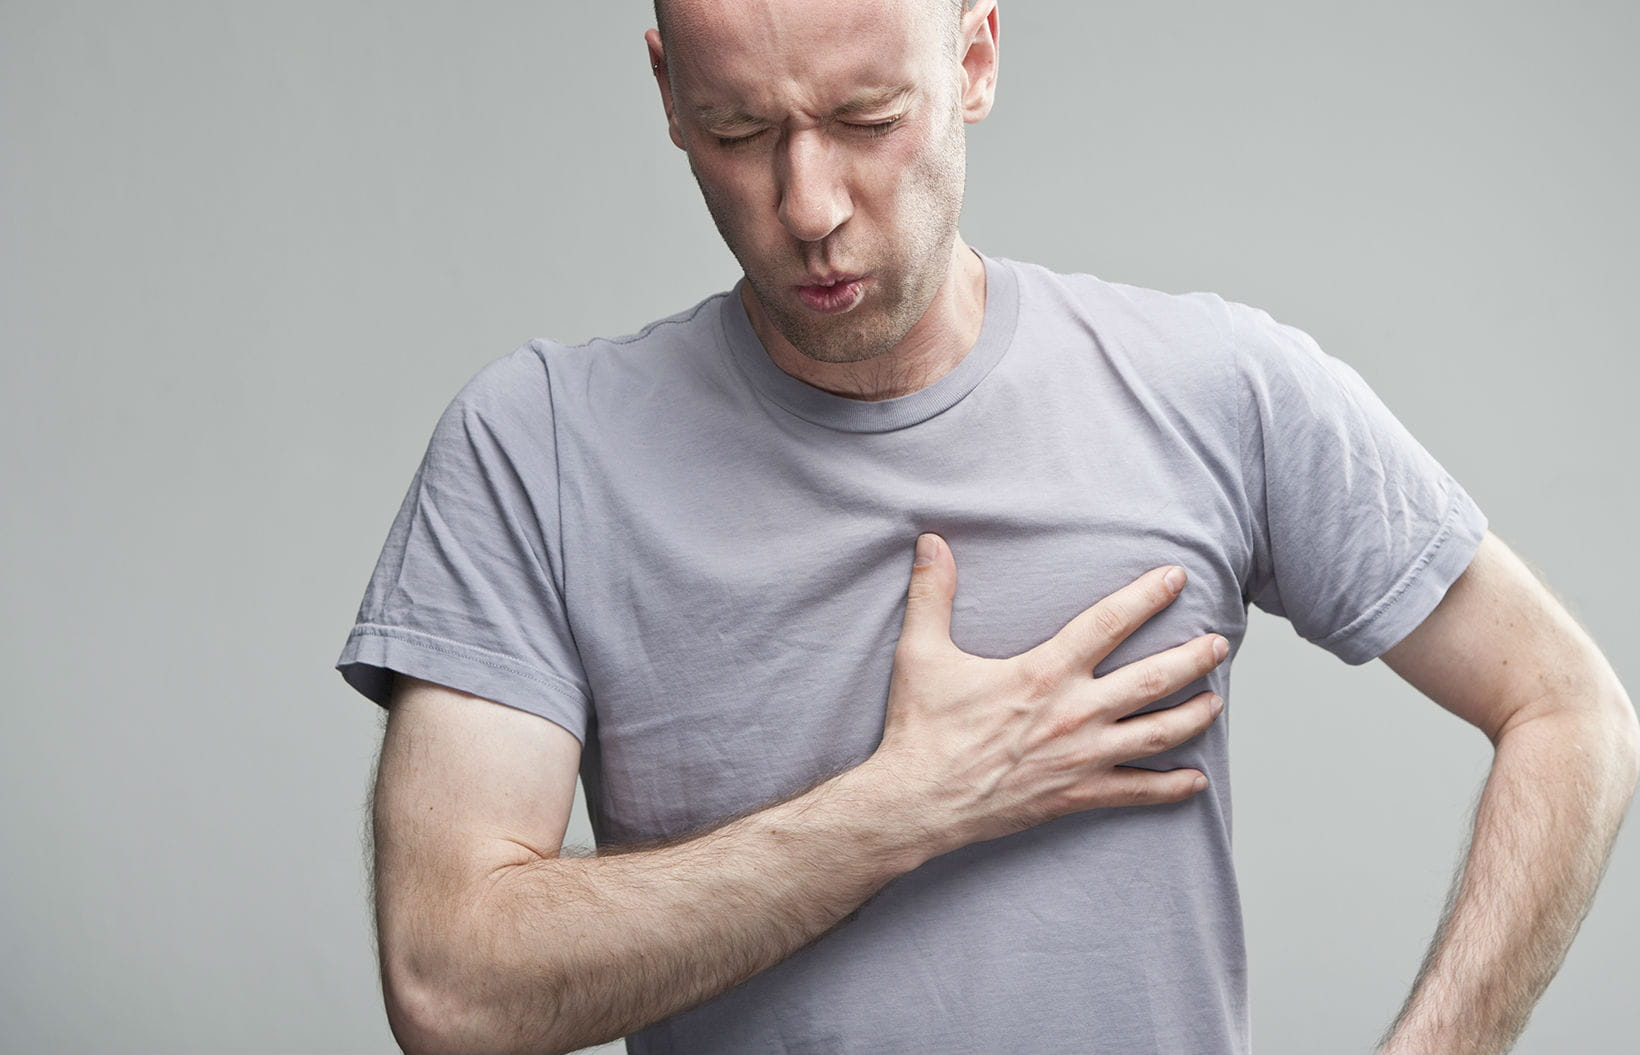 how to train people with unexplained chest pains